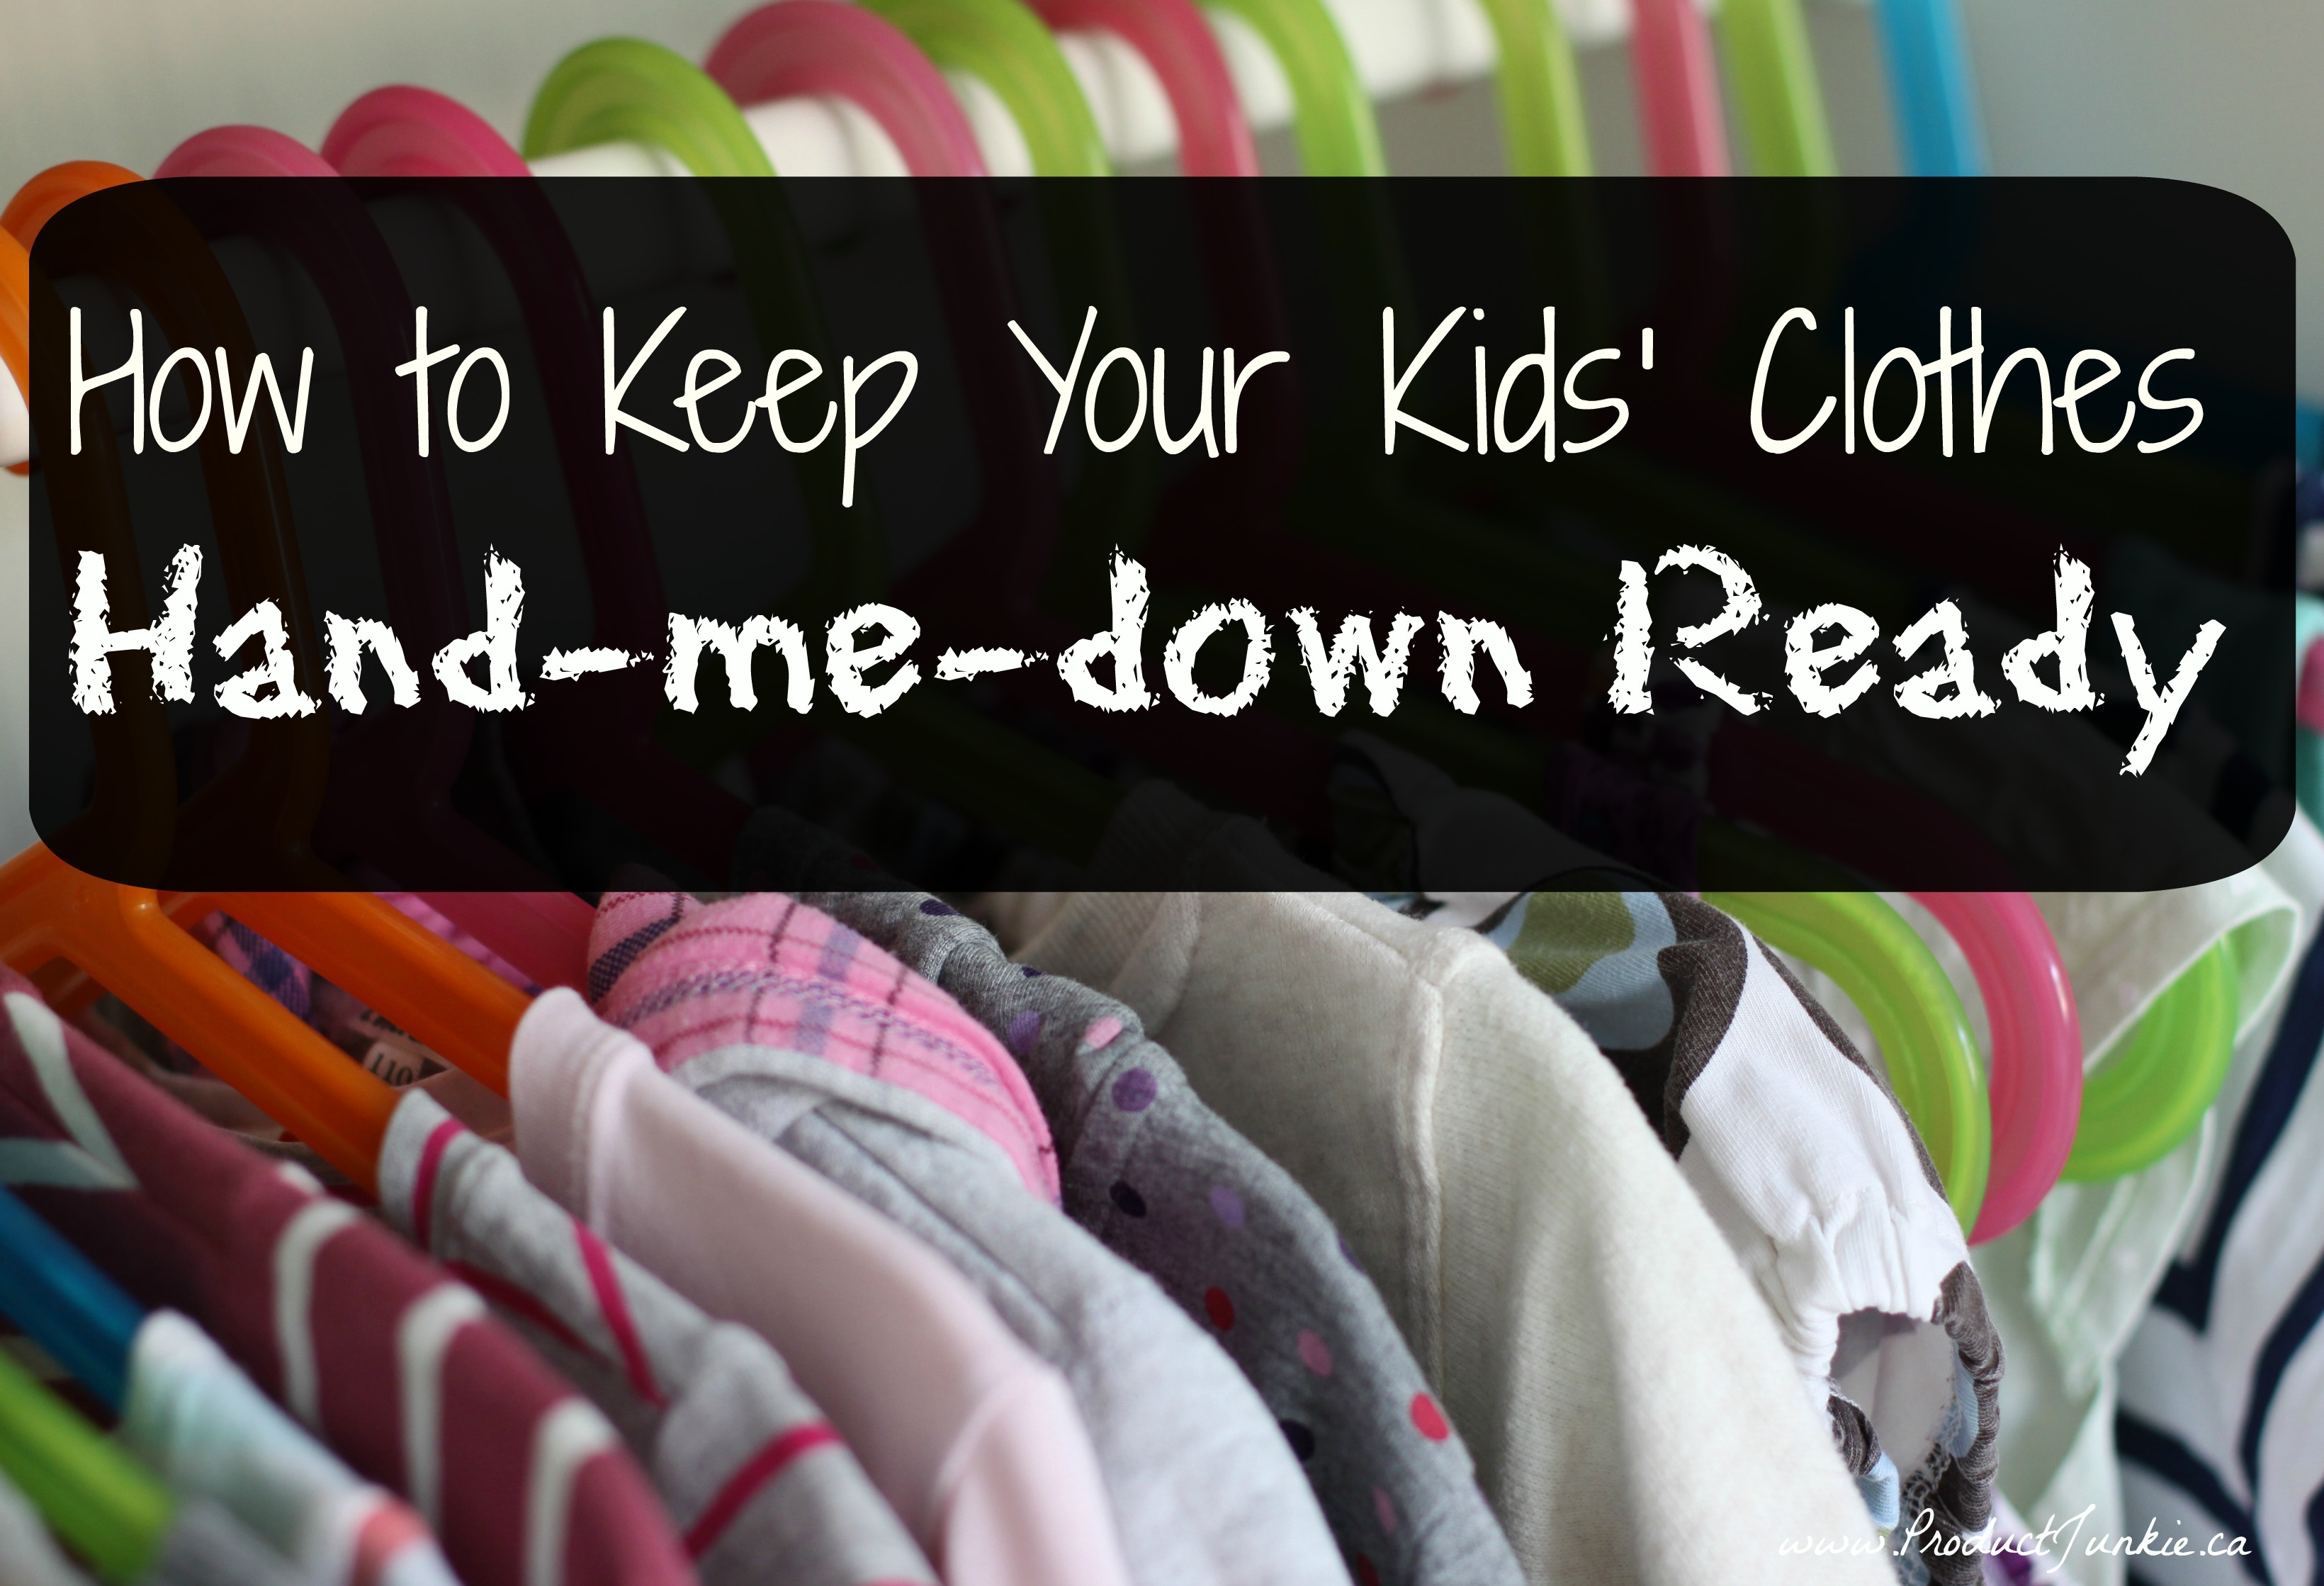 How to Keep Your Kids' Clothes Hand-me-down Ready